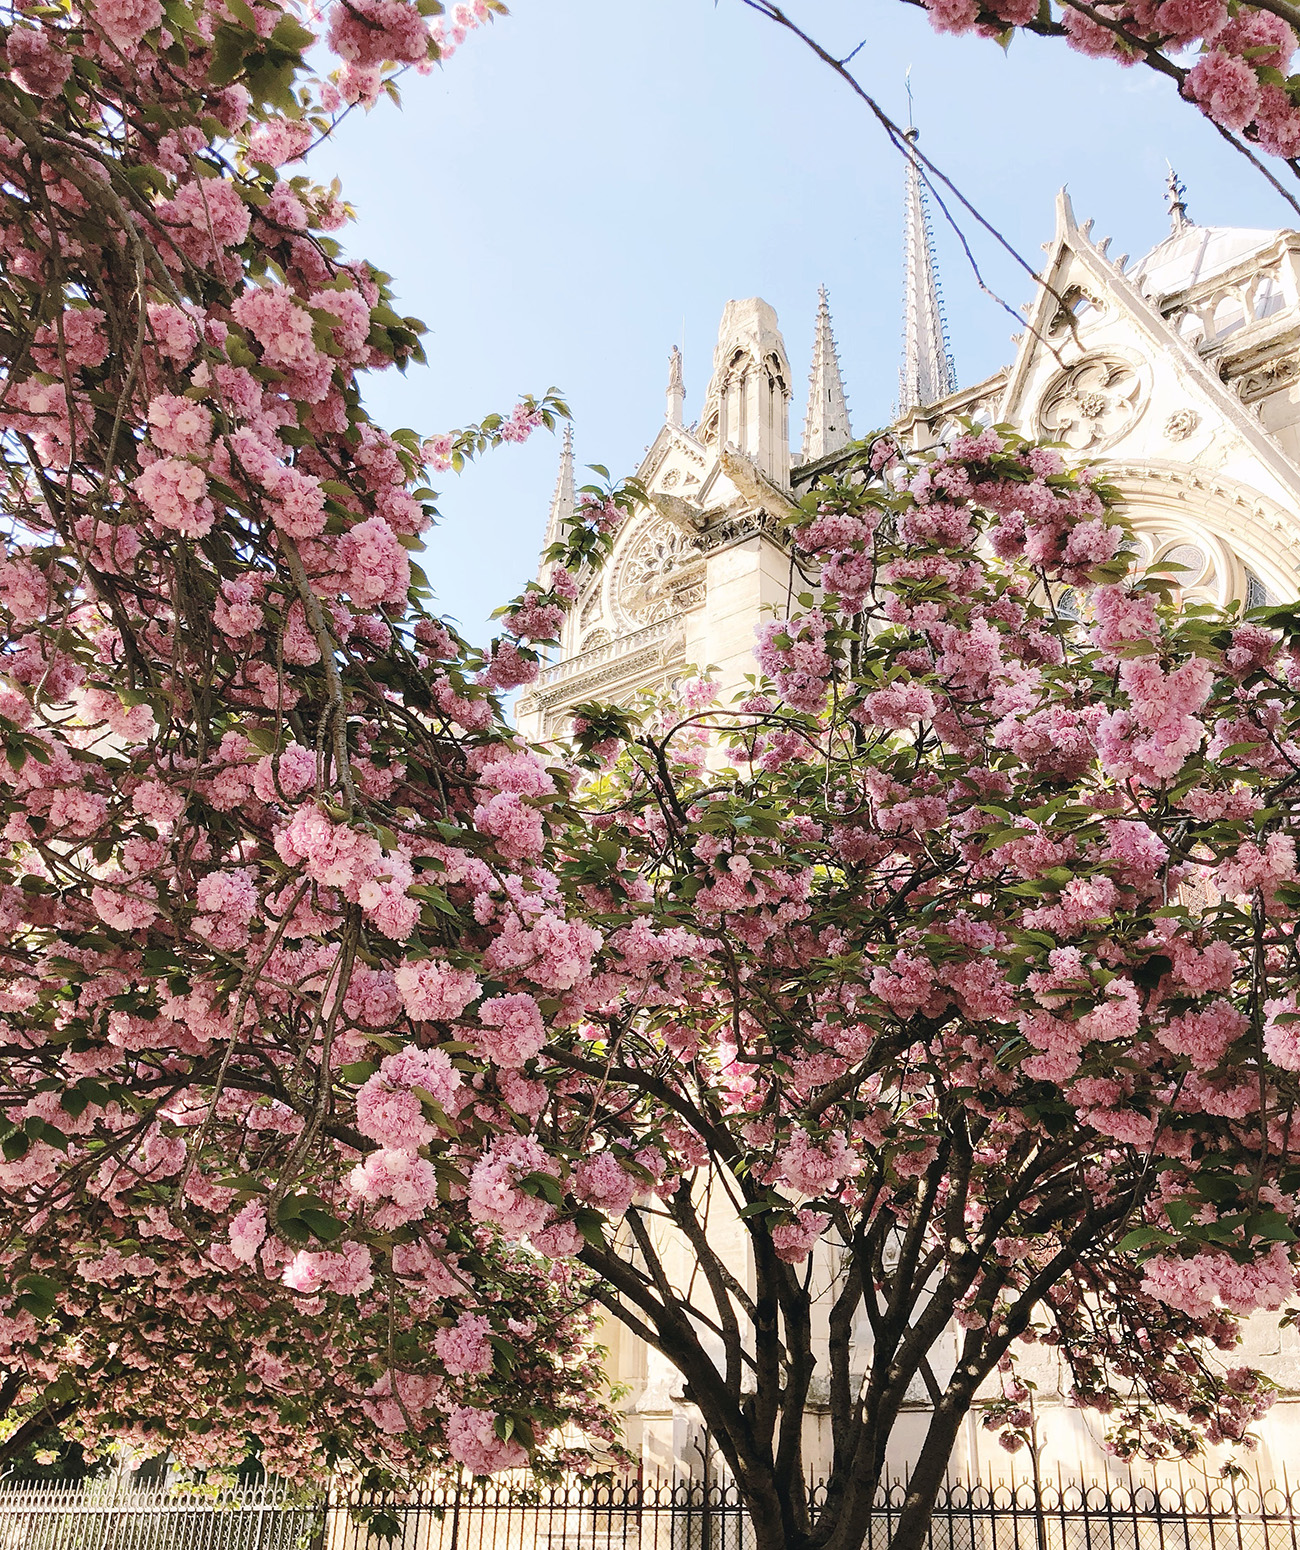 Notre Dame with Cherry Blossoms